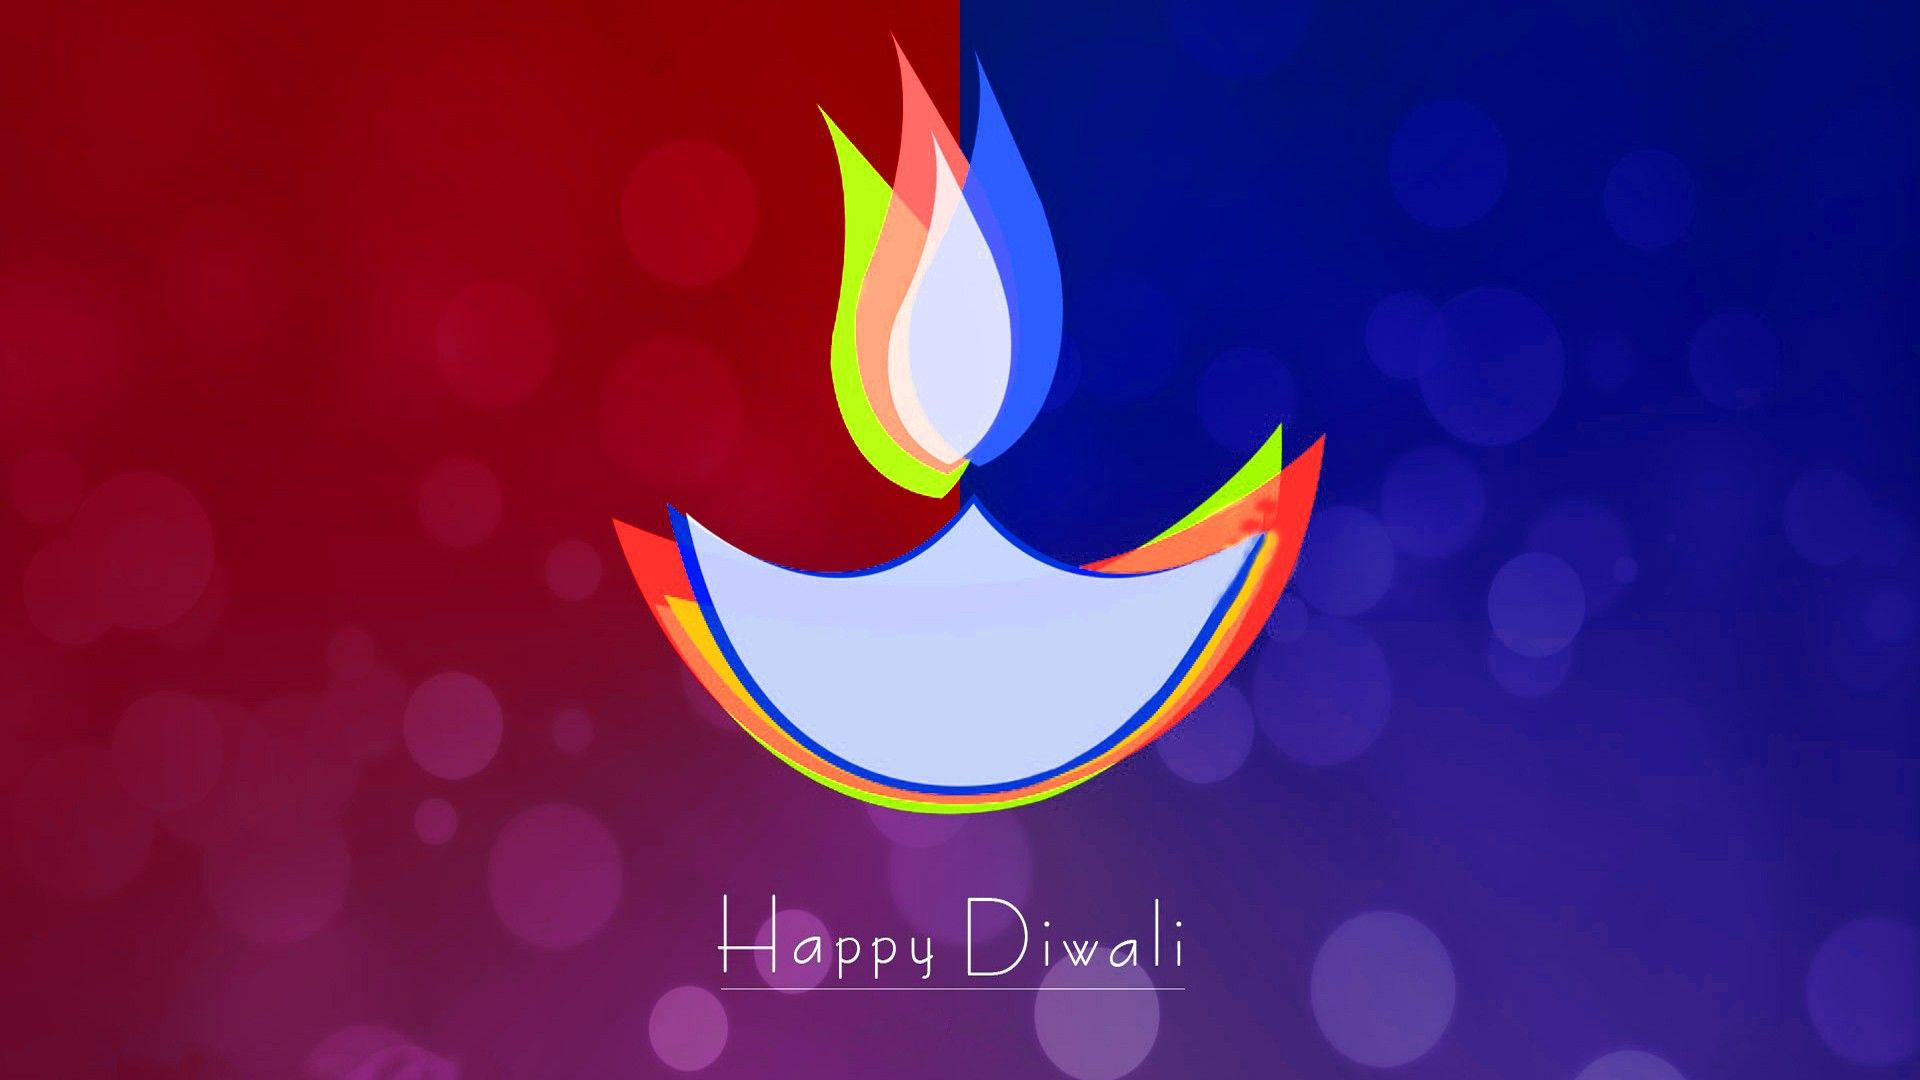 Happy Diwali And Dhanteras Wallpapers: Happy Diwali HD Wallpapers